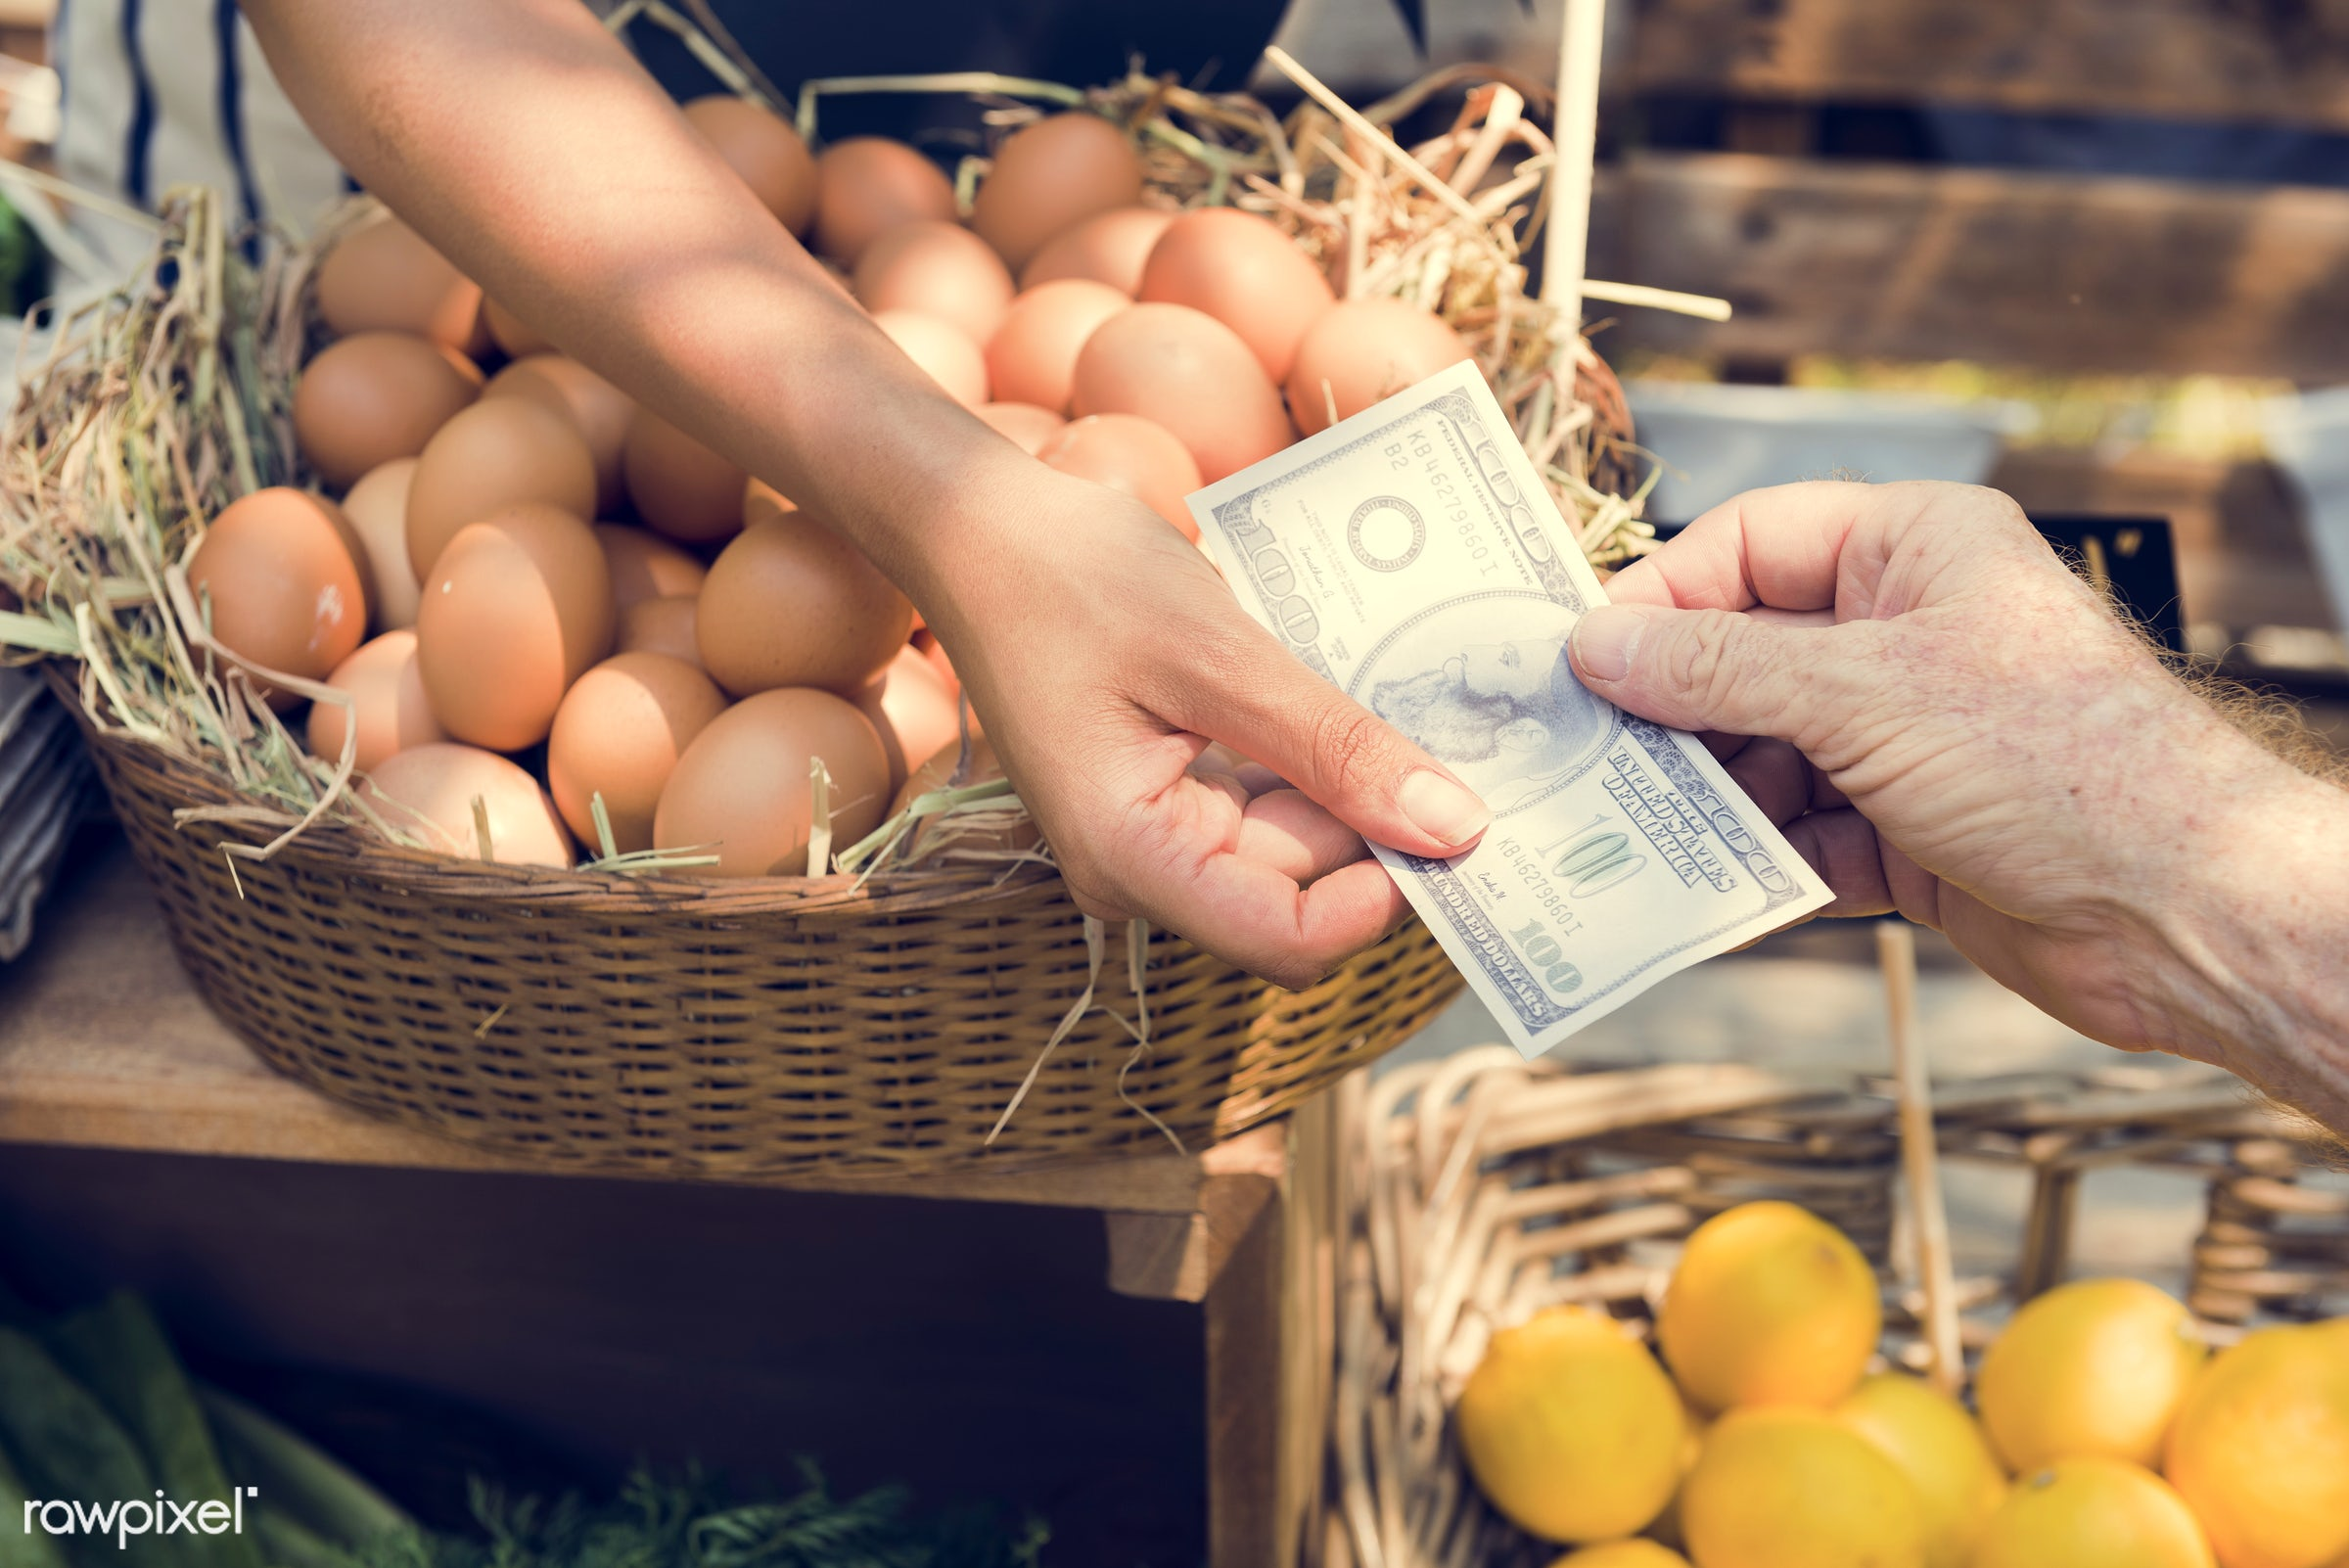 grocery, shop, store, nutritious, trade, egg, people, farmer, fresh, woman, healthy eating, money, marketplace, cheerful,...